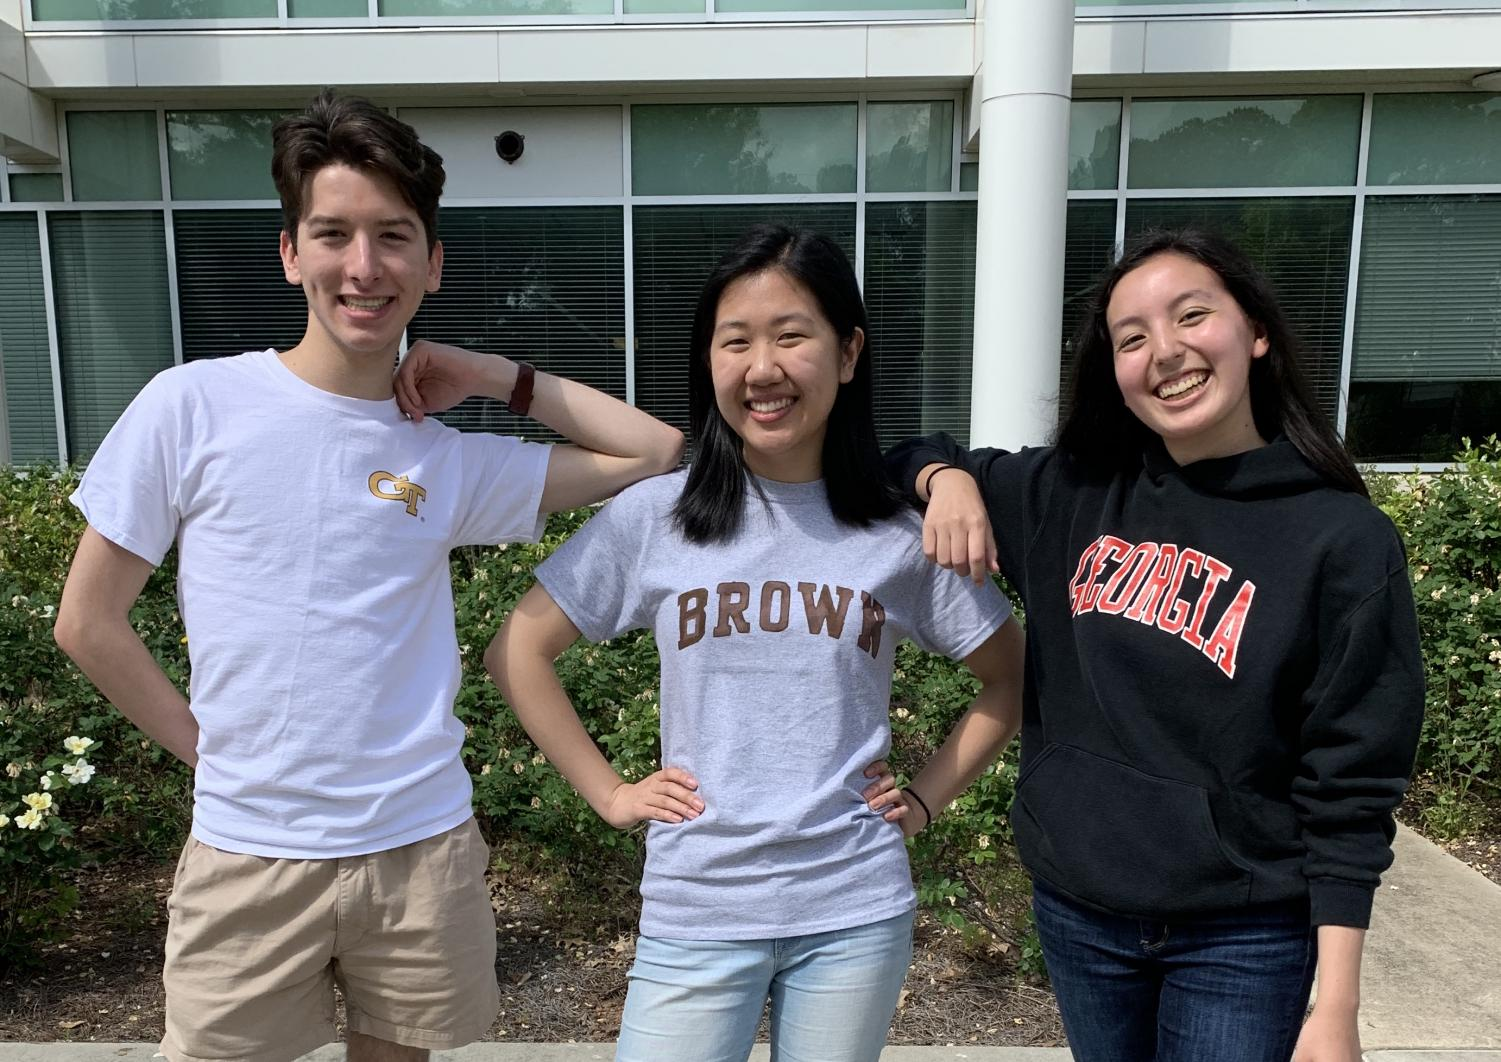 Alice Bai (center) stands with her fellow editors on College Decision Day. She chose Brown.